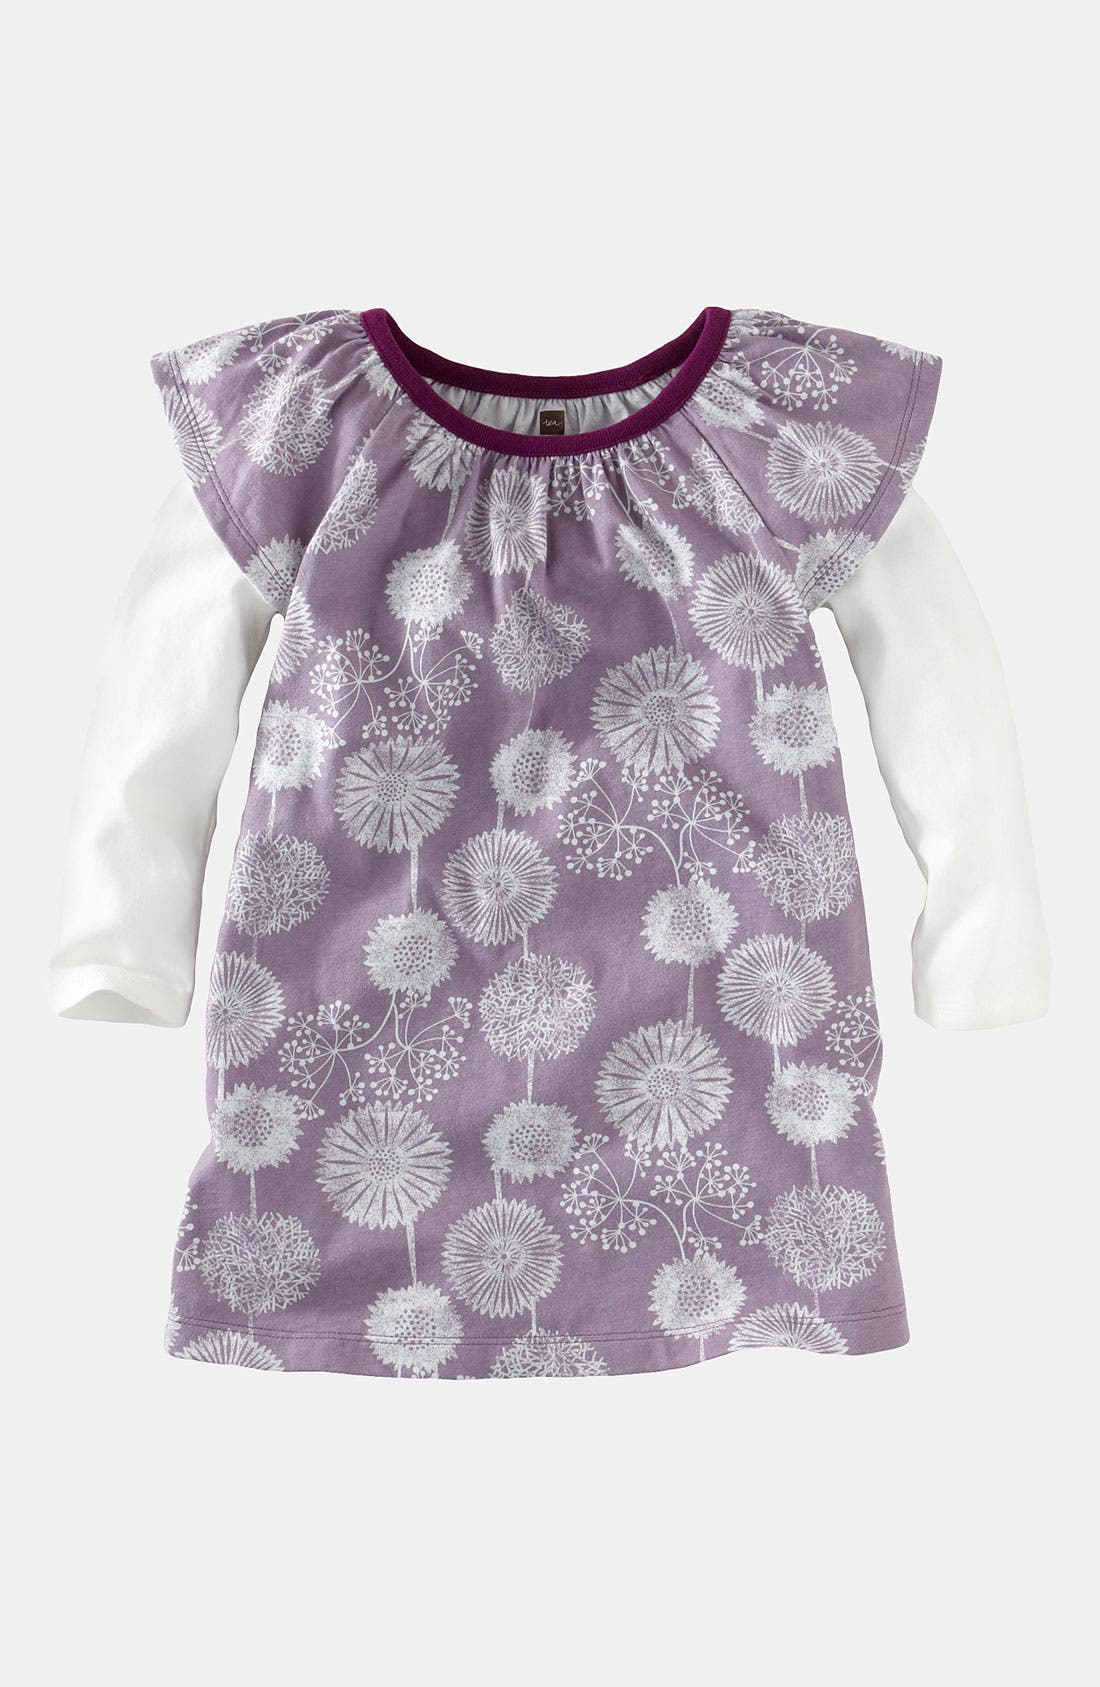 Main Image - Tea Collection 'Svenska Wildflower' Layered Sleeve Dress (Toddler)